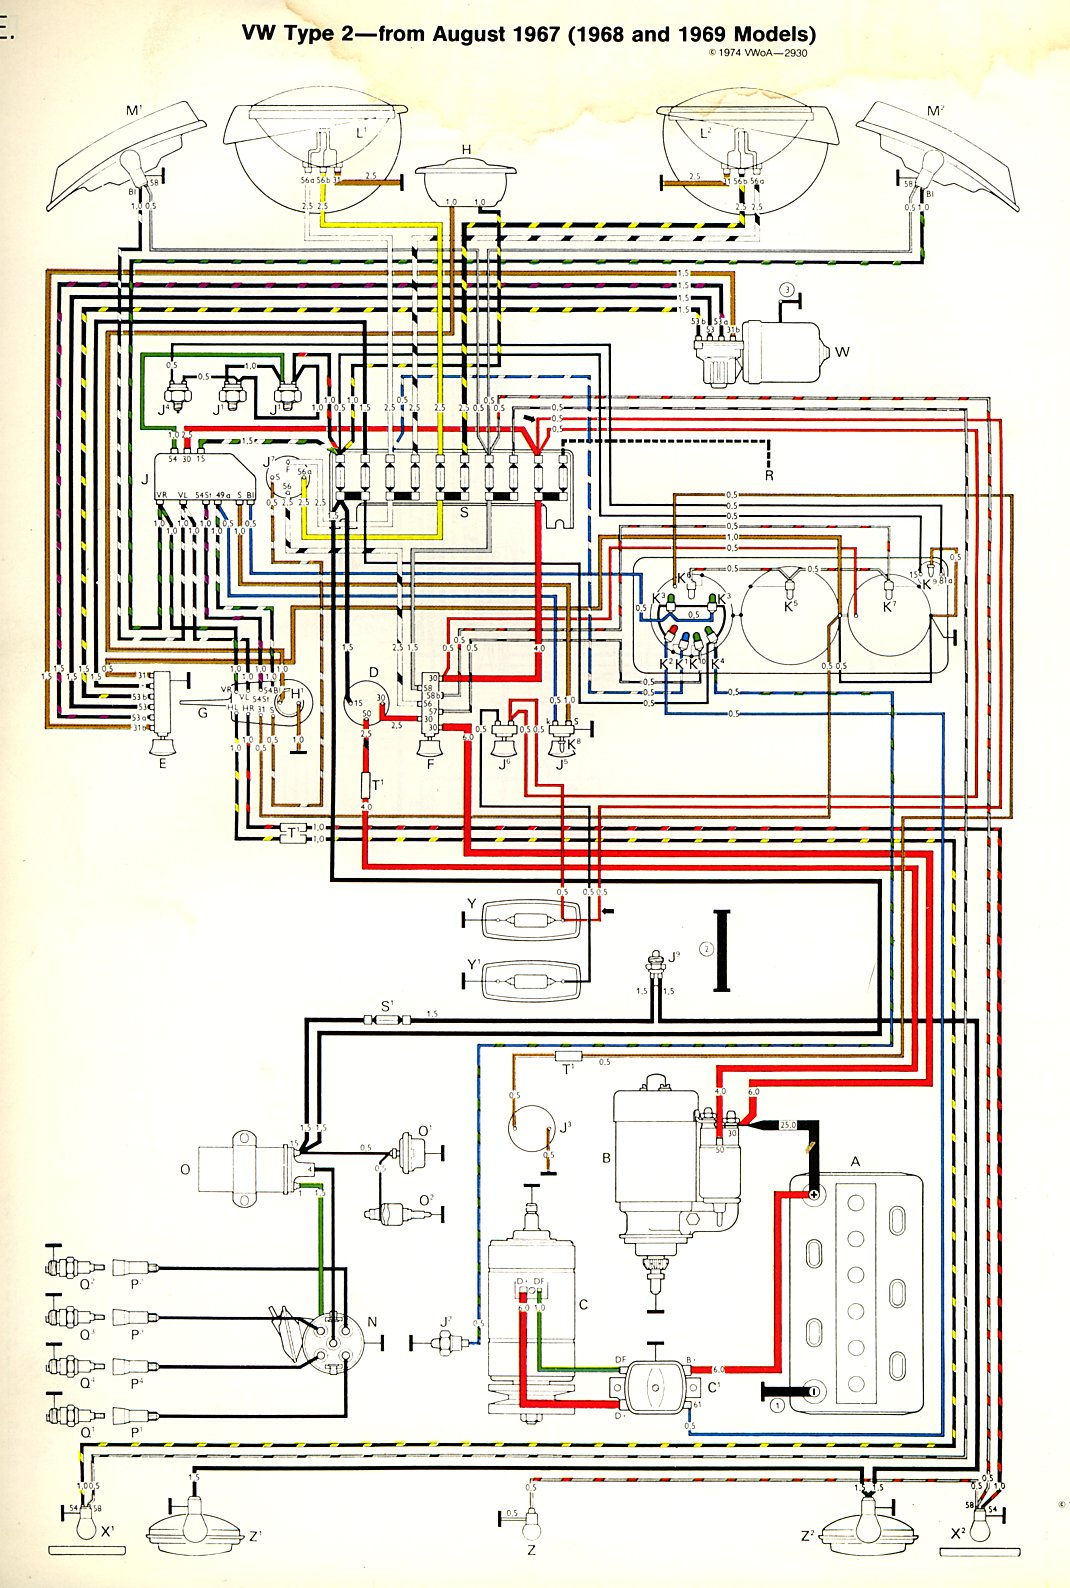 Cumputer 2000 Vw Jetta Wiring Diagrams Experts Of Diagram 2002 Mini Free Picture Schematic Computer U2022 Rh Evilcloud Co Uk